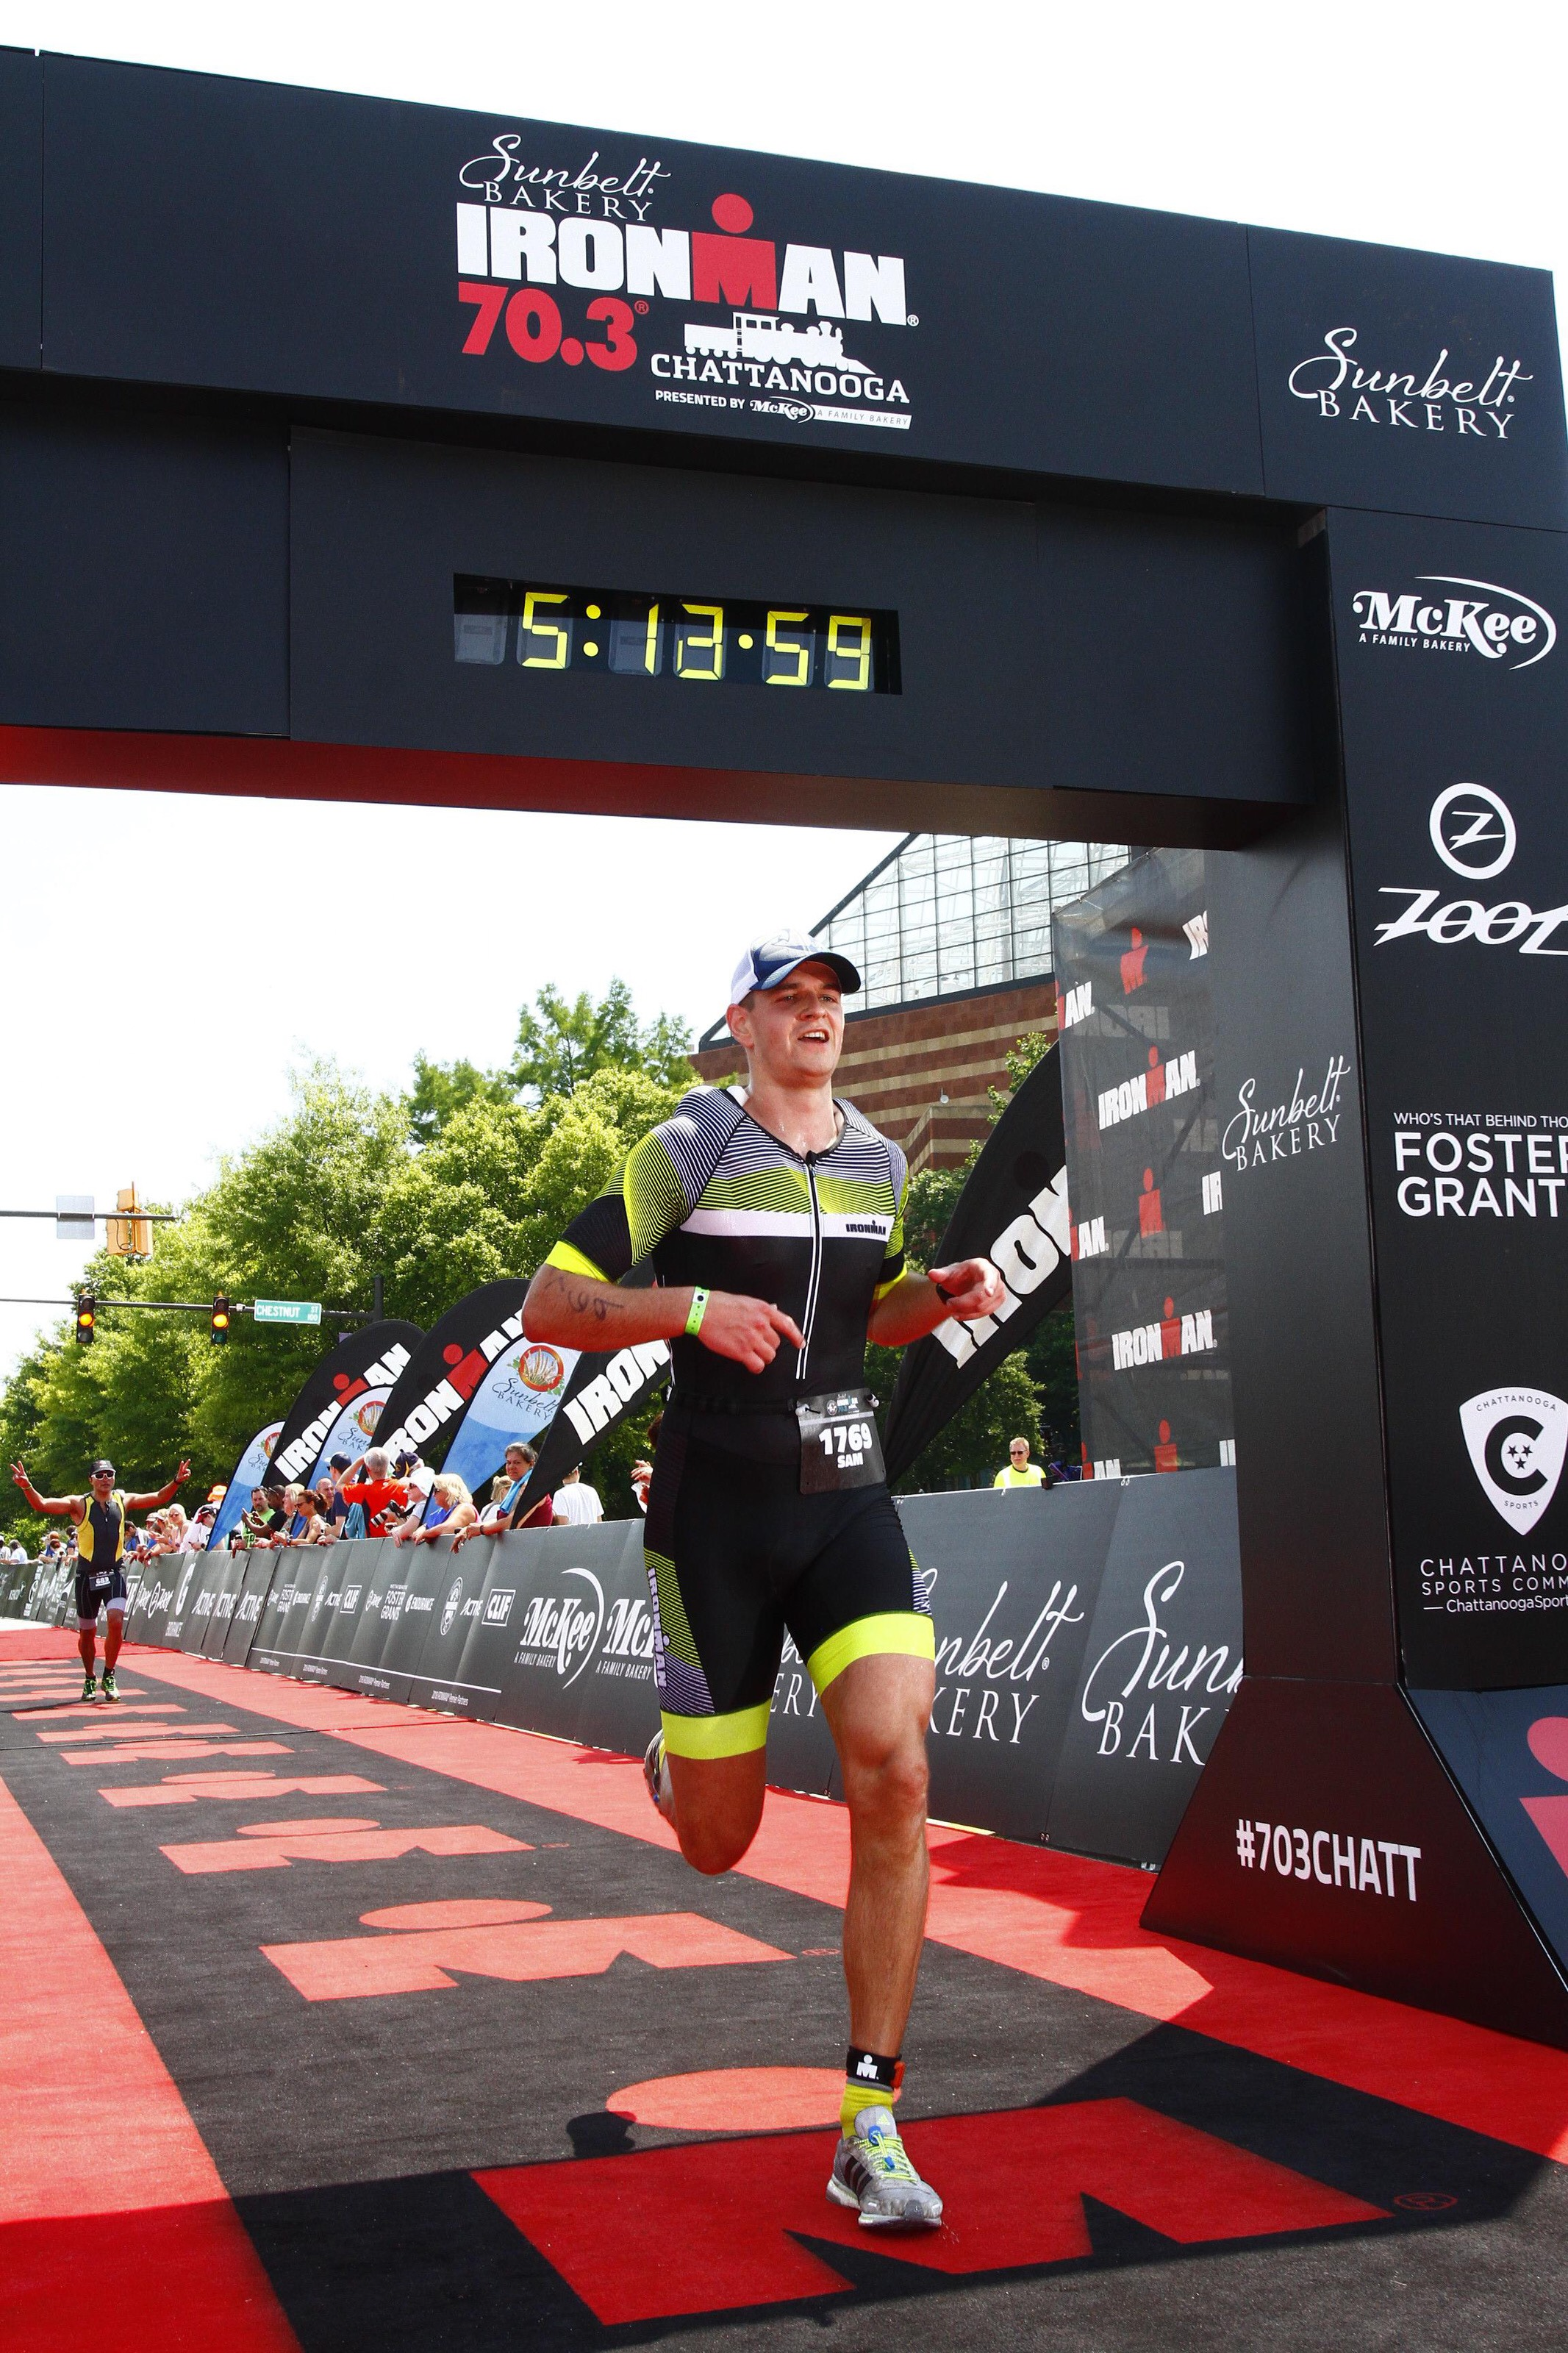 Crossing the finish line at Ironman Chattanooga